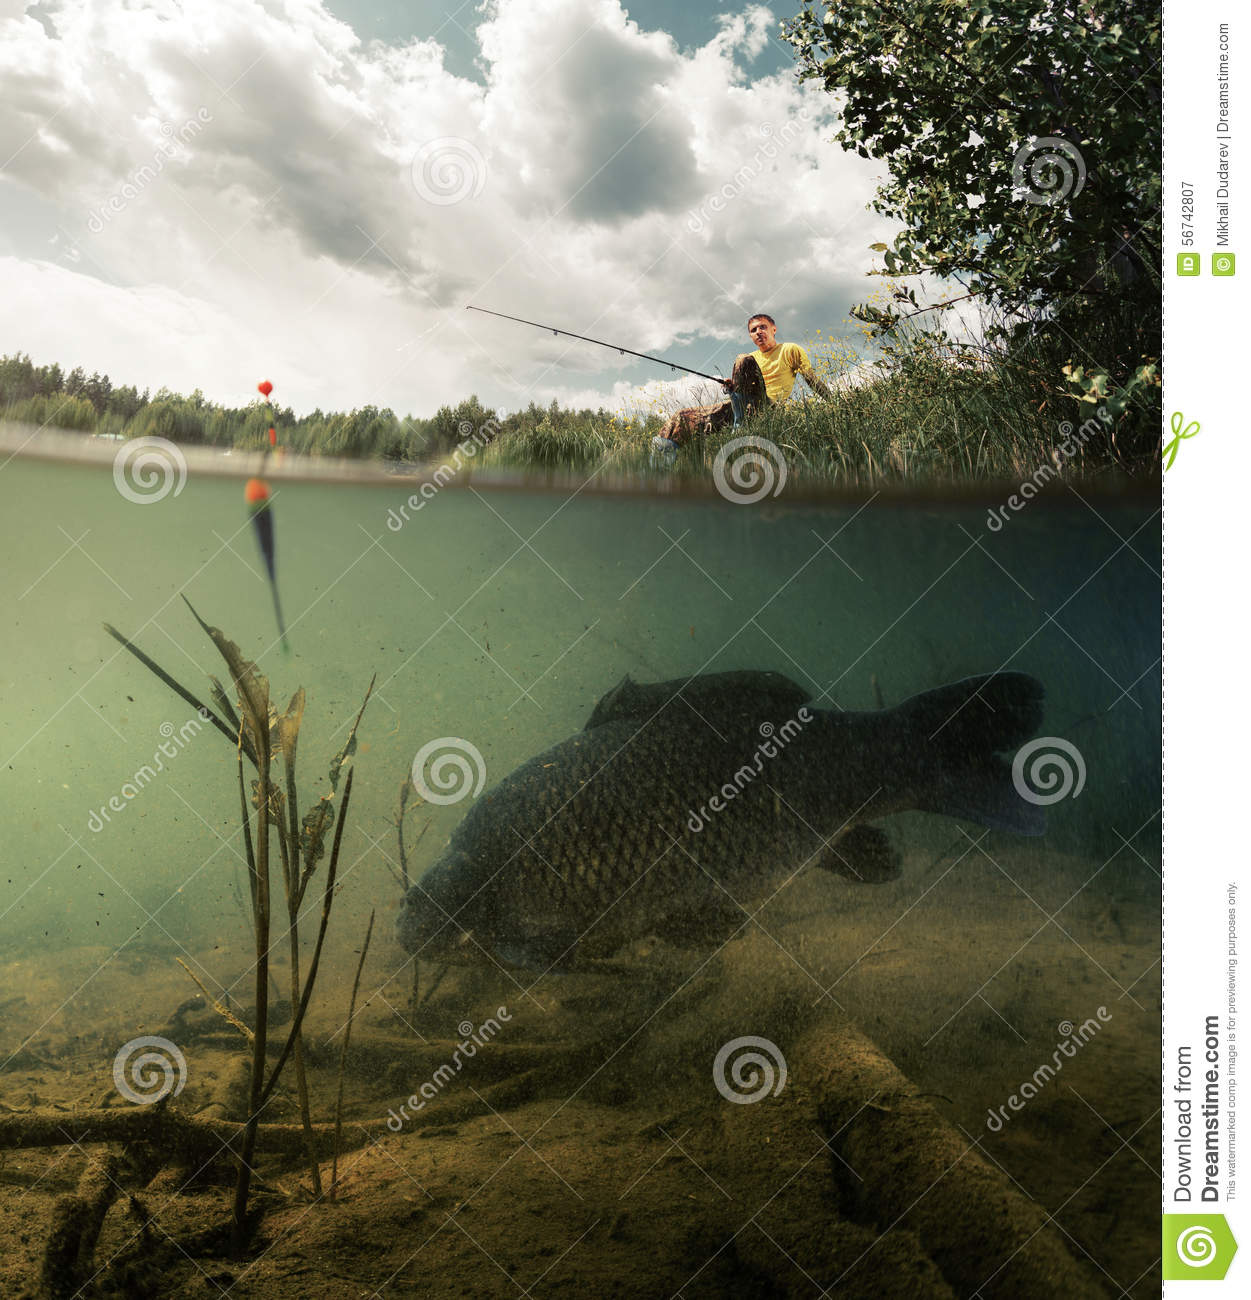 Pond with carp stock photo image 56742807 for Big fish pond